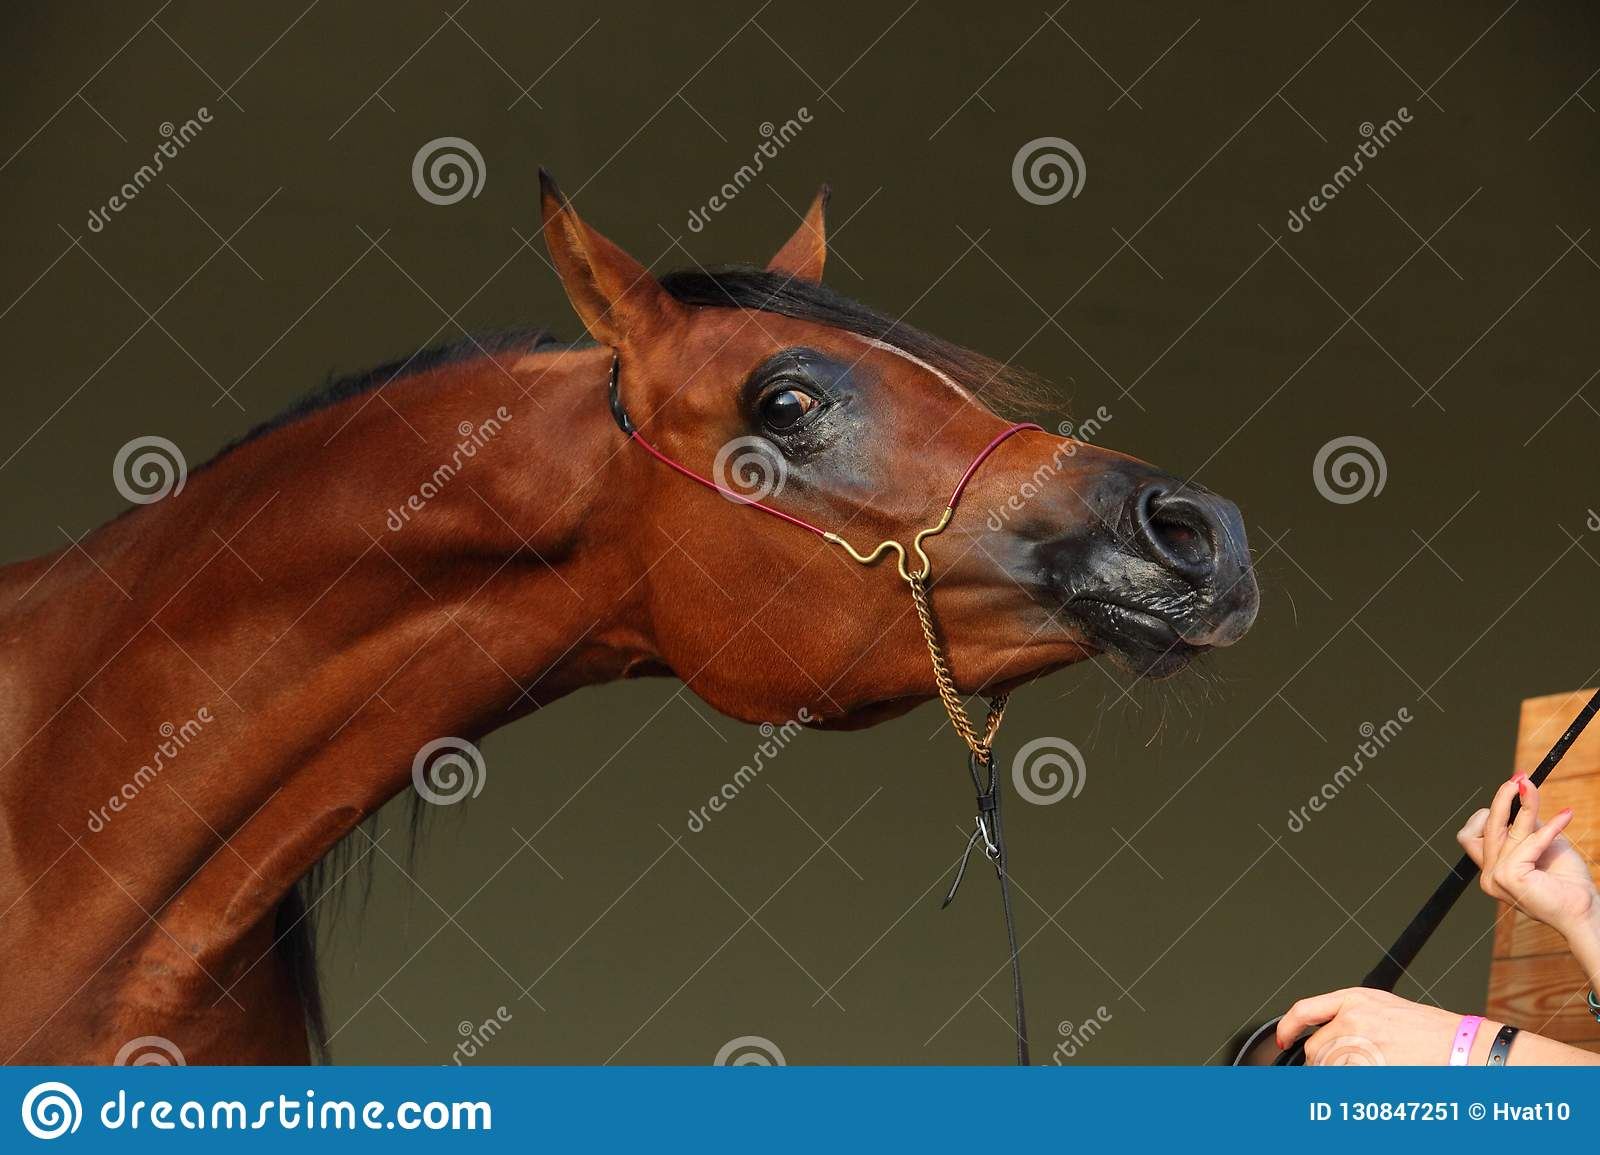 Purebred Arabian Horse With Jewelry Bridle Stock Image Image Of Animal Closeup 130847251